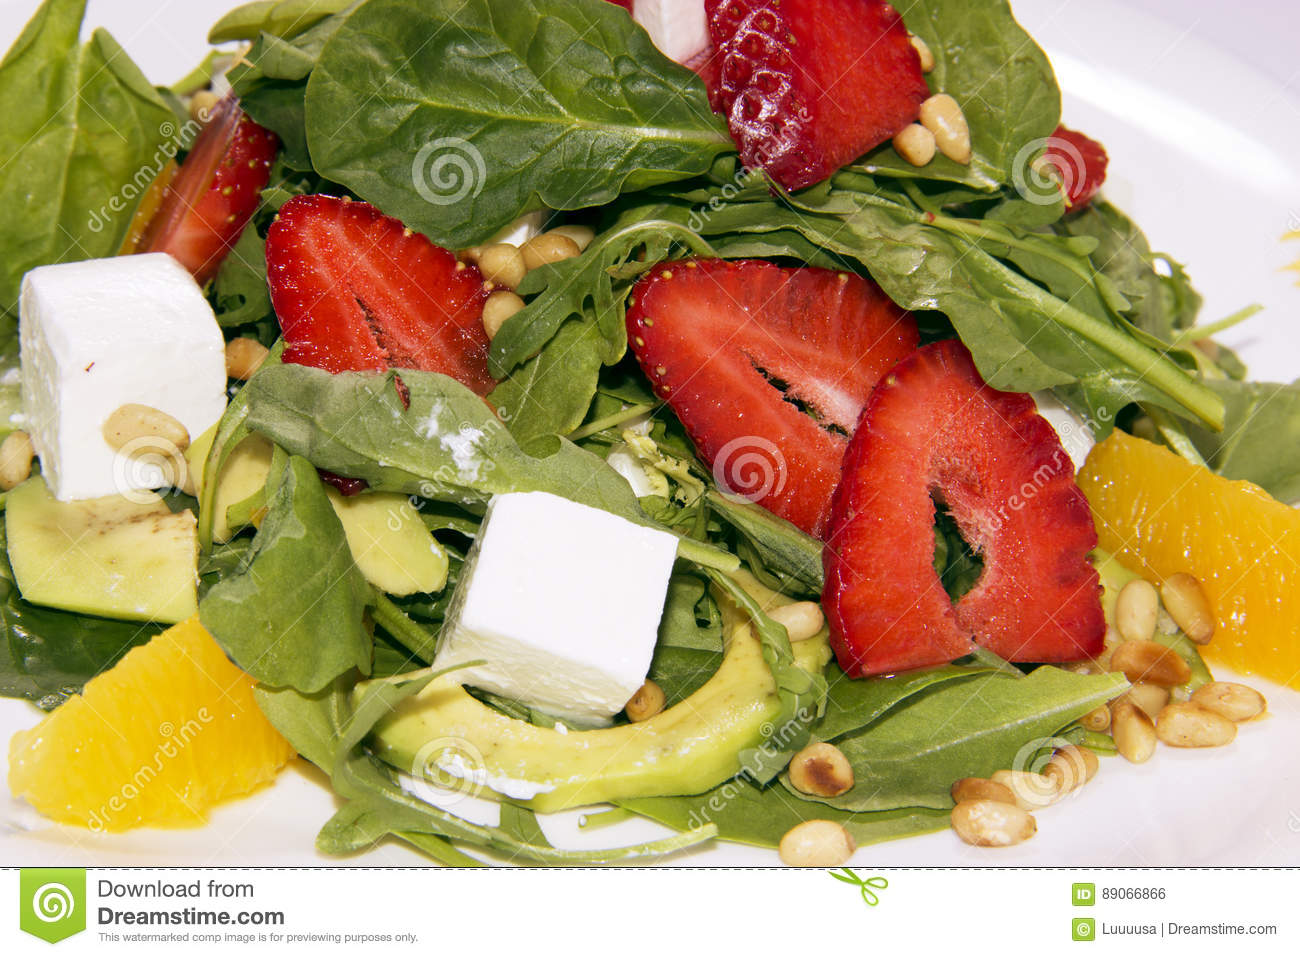 Salad with arugula,strawberries and cheese. background salad texture